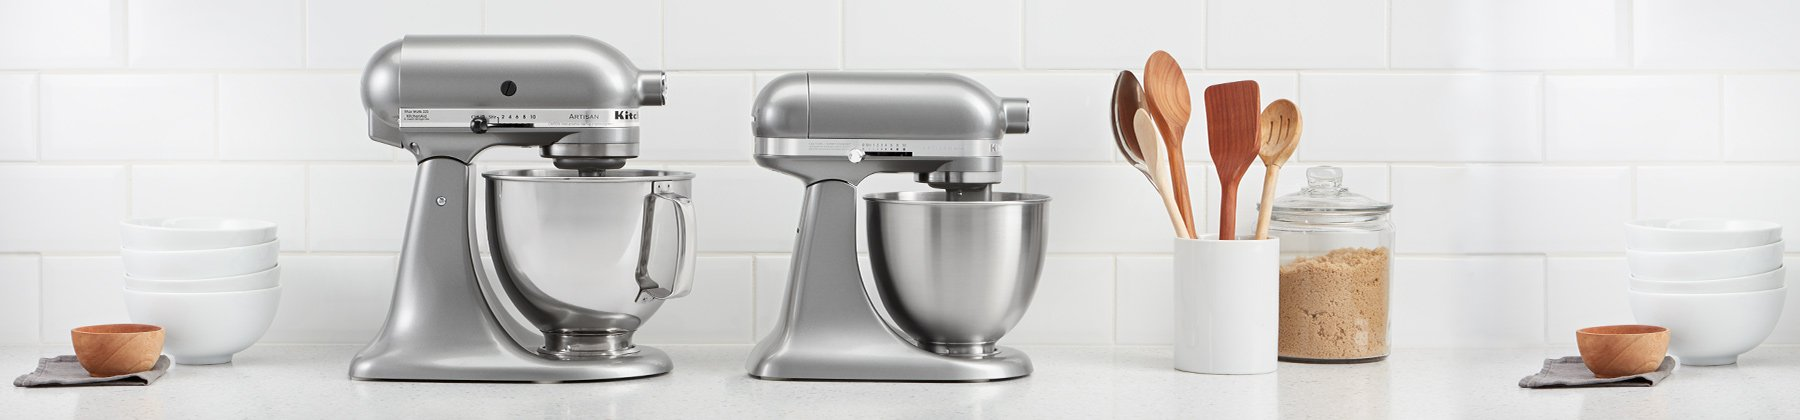 Photo of stand mixers.